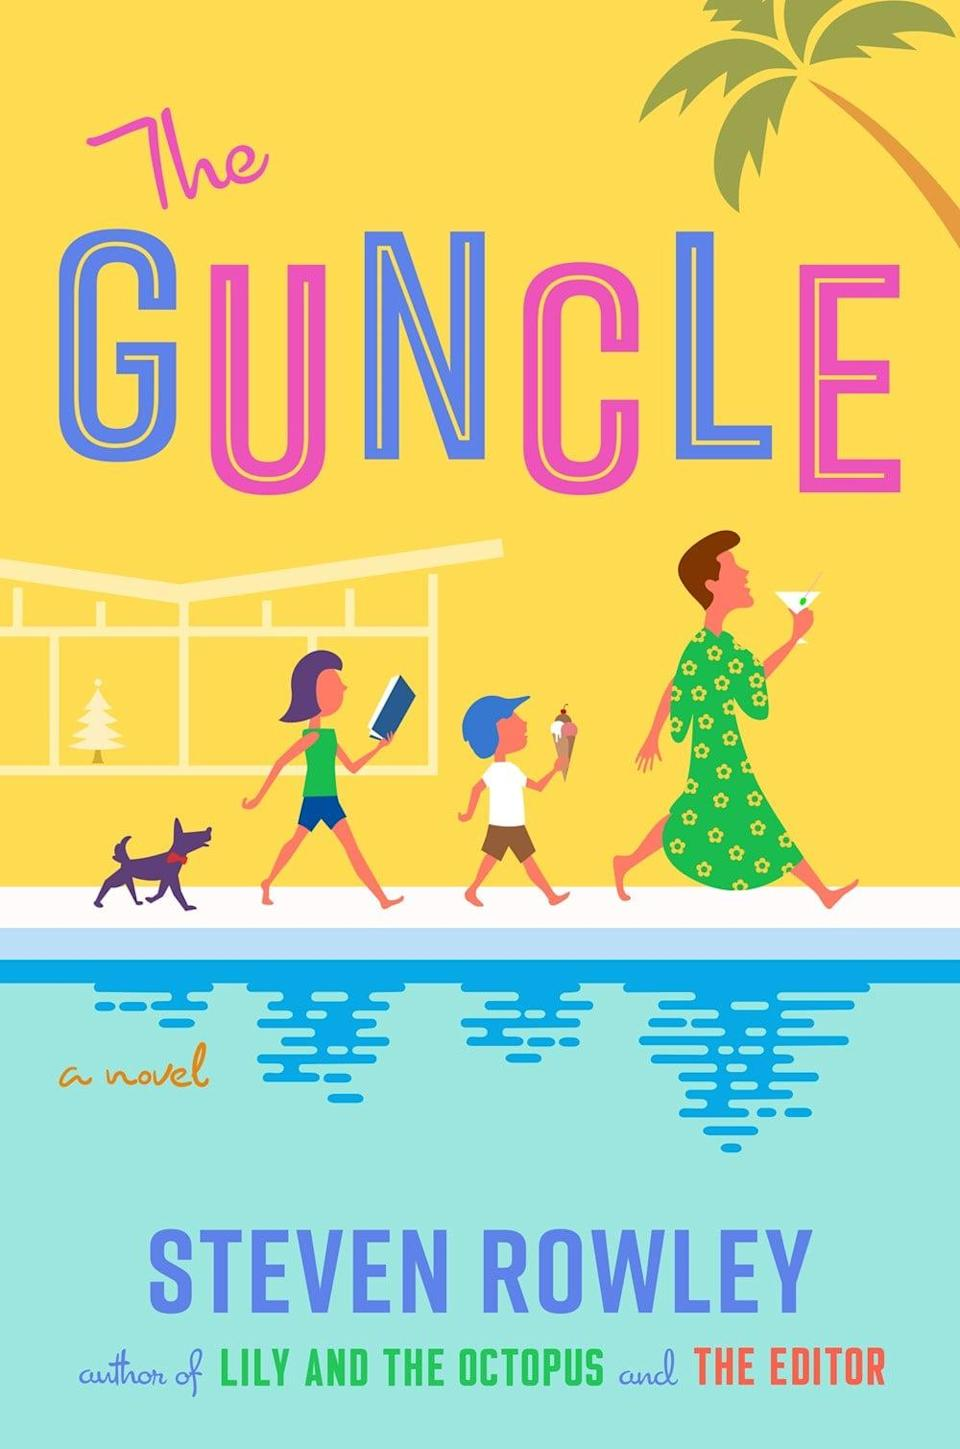 <p><span><strong>The Guncle</strong></span> by Steven Rowley is a big-hearted, laugh-out-loud-funny kind of book that's sure to stay with you long after you turn the final page. The novel follows Patrick, a former sitcom star and the fun-loving guy known as GUP (Gay Uncle Patrick) to his little niece and nephew. However, when a family tragedy sends his niece and nephew to his Palm Springs home for an extended stay, Patrick is going to have to learn how to be more than just the fun uncle - even if doling out snacks is so much easier than trying to understand two tiny humans.</p> <p><em>Out May 25</em></p>